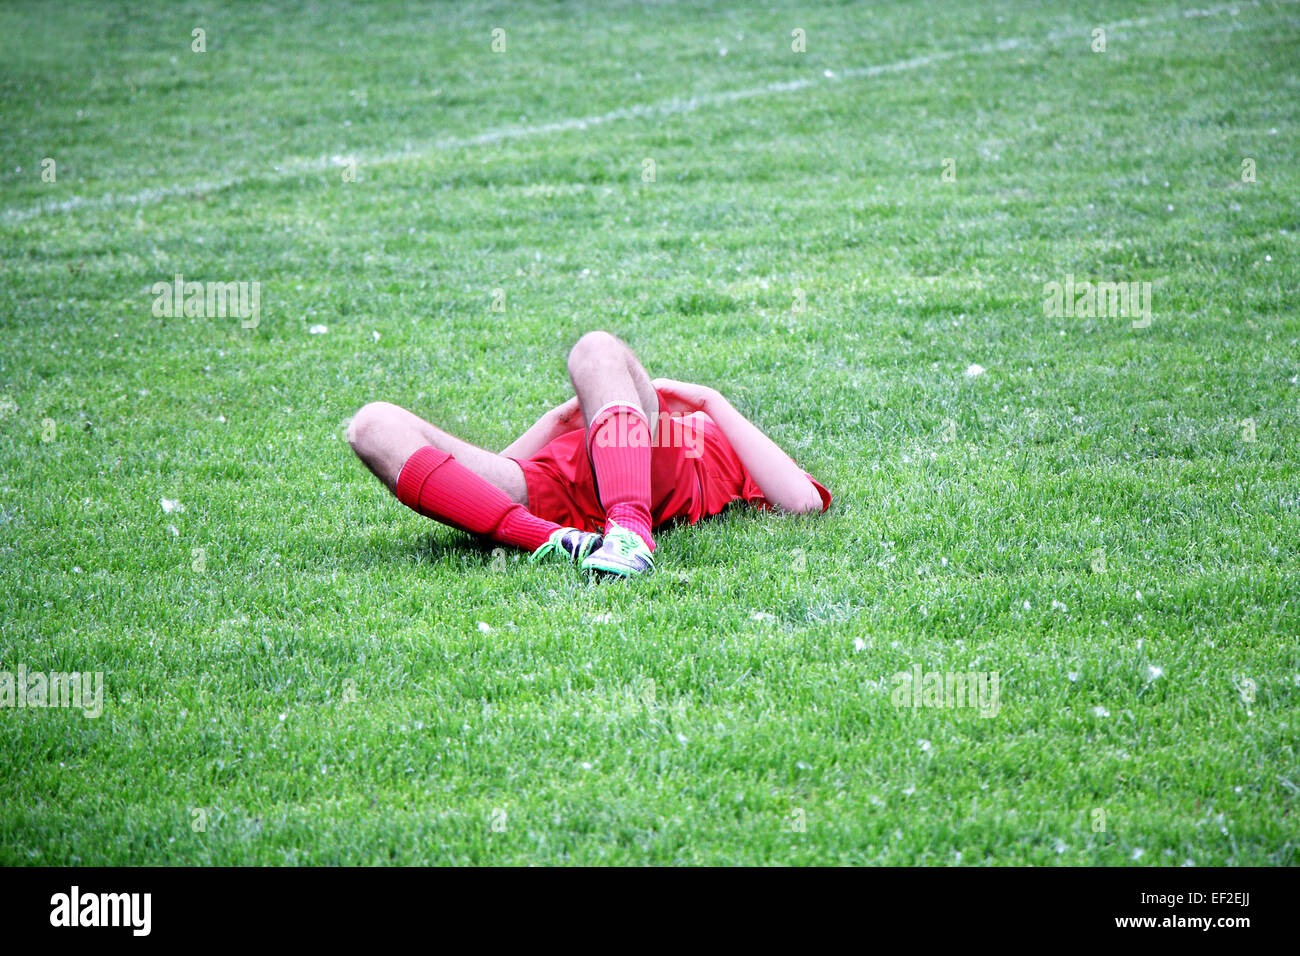 Injured Football or Soccer Player Lying On The Ground - Stock Image